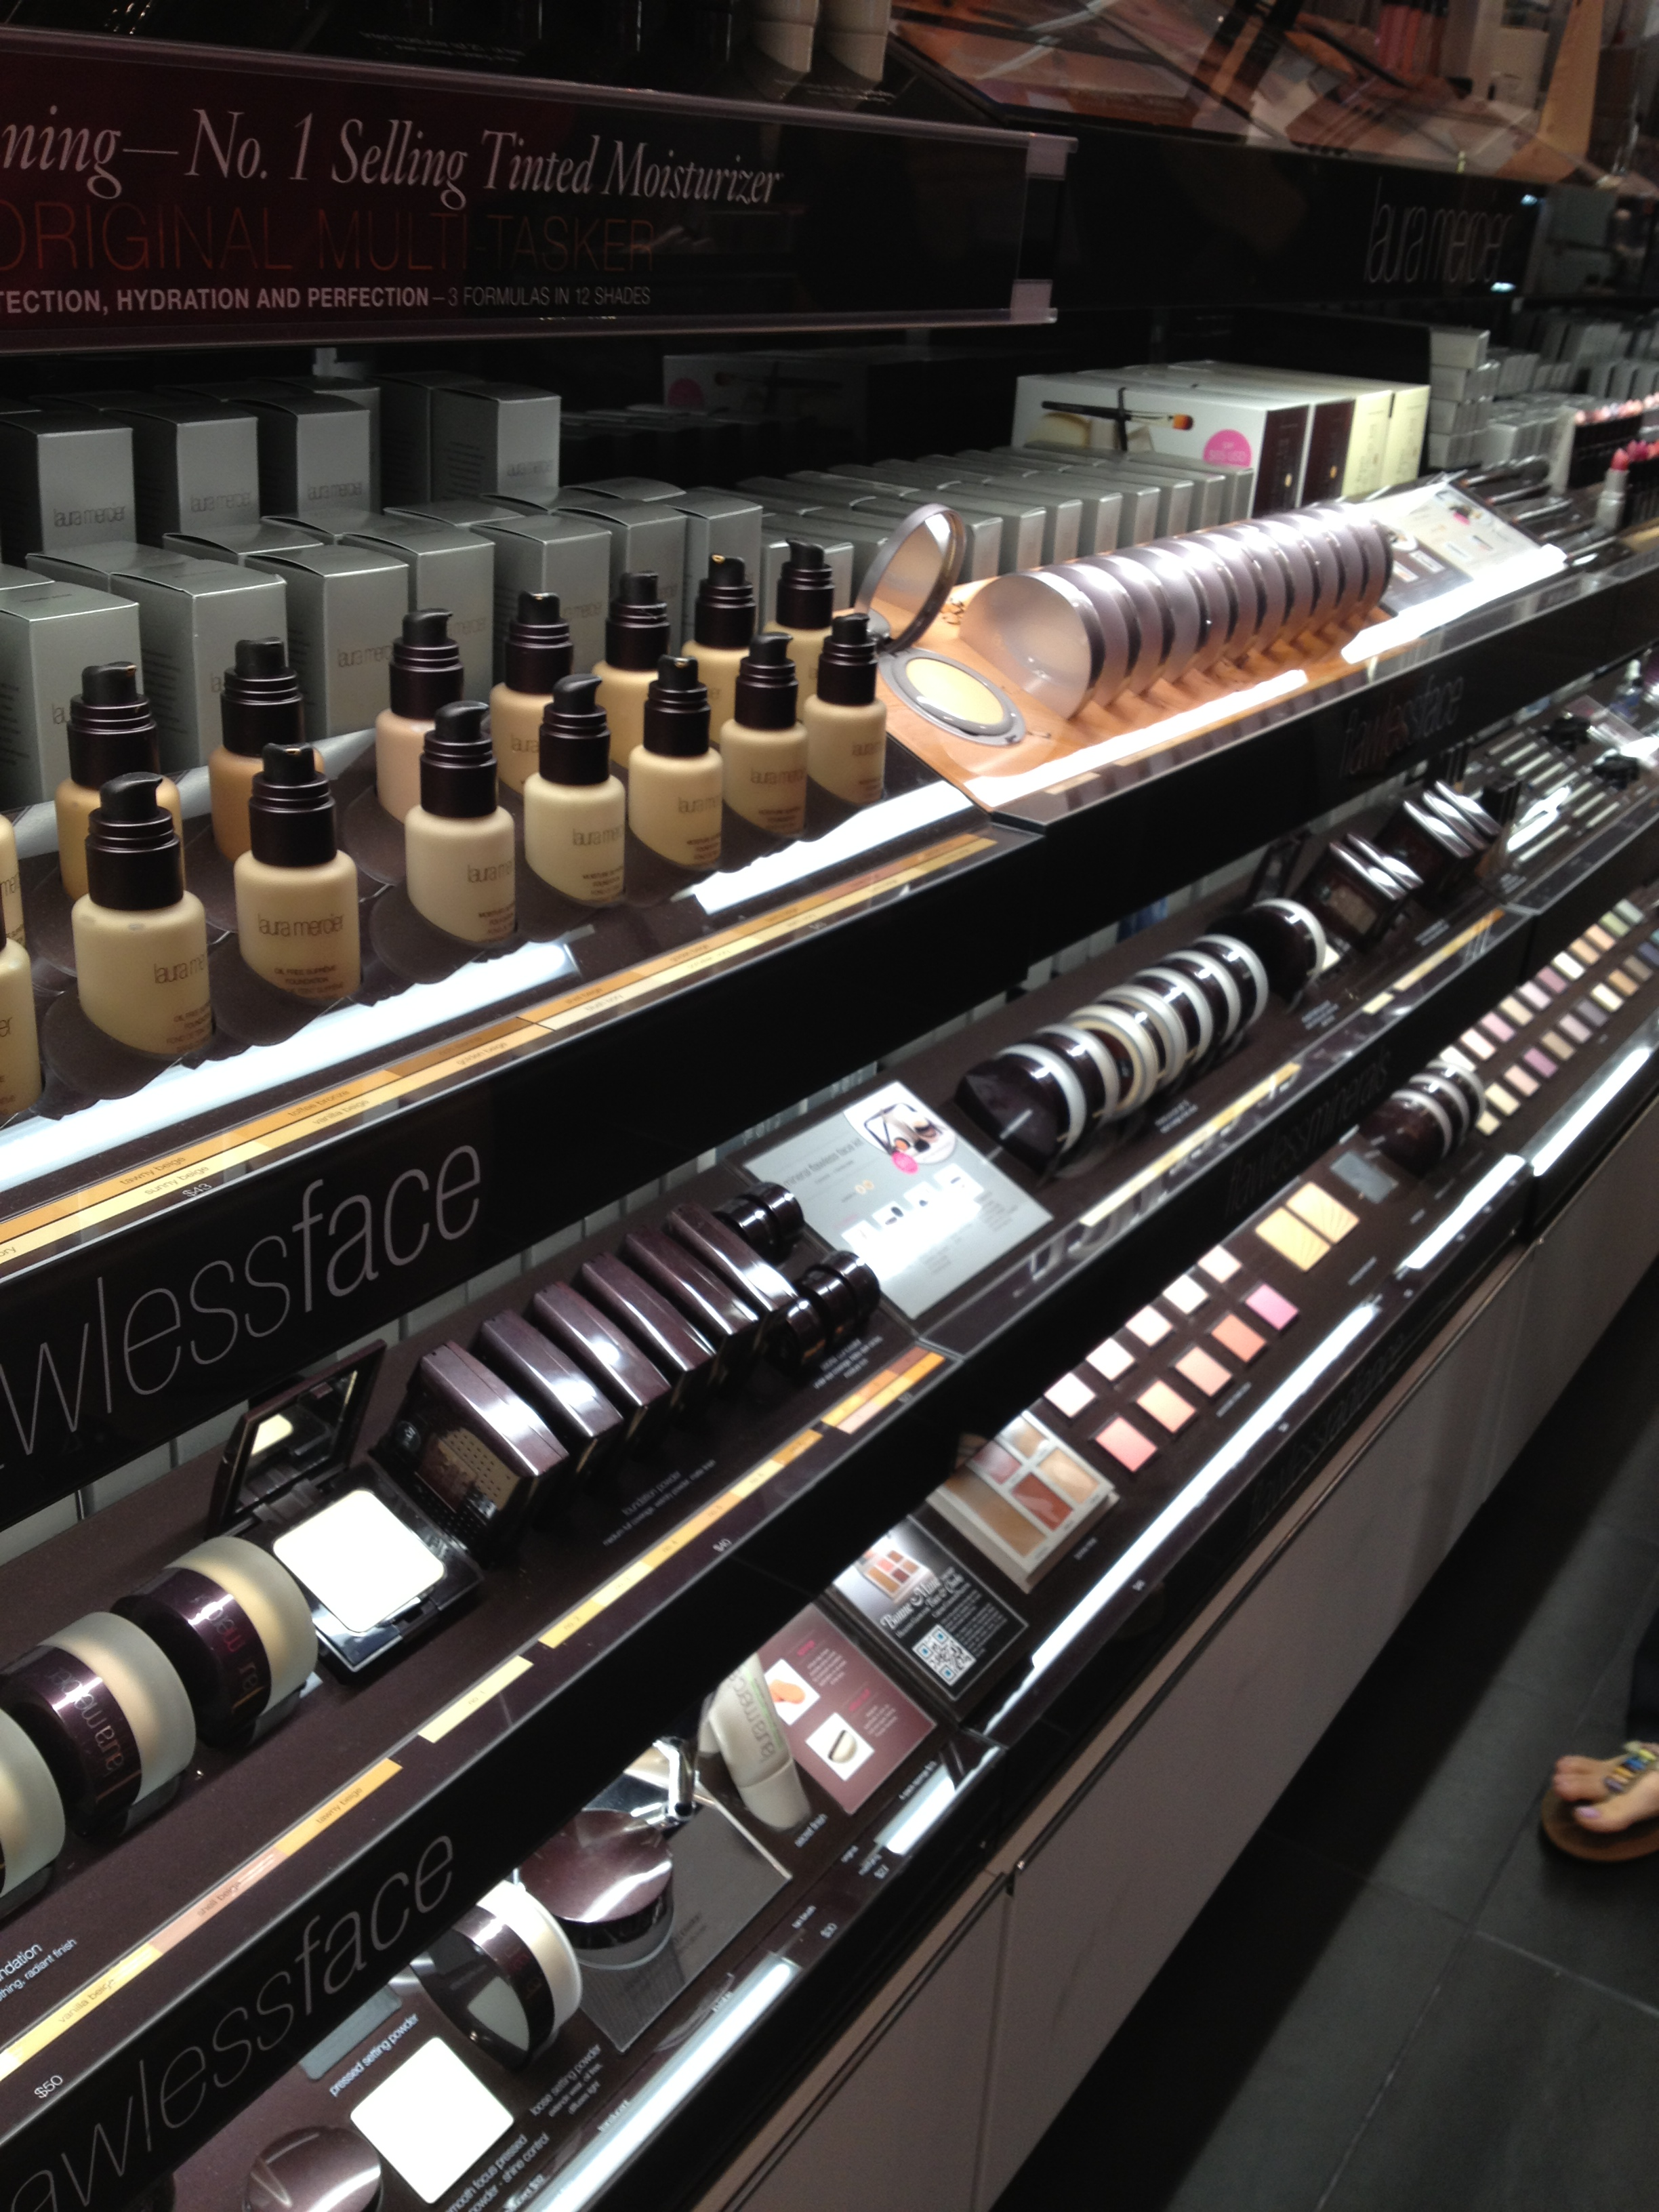 Does Sephora Do Makeup: South Coast Plaza New Sephora